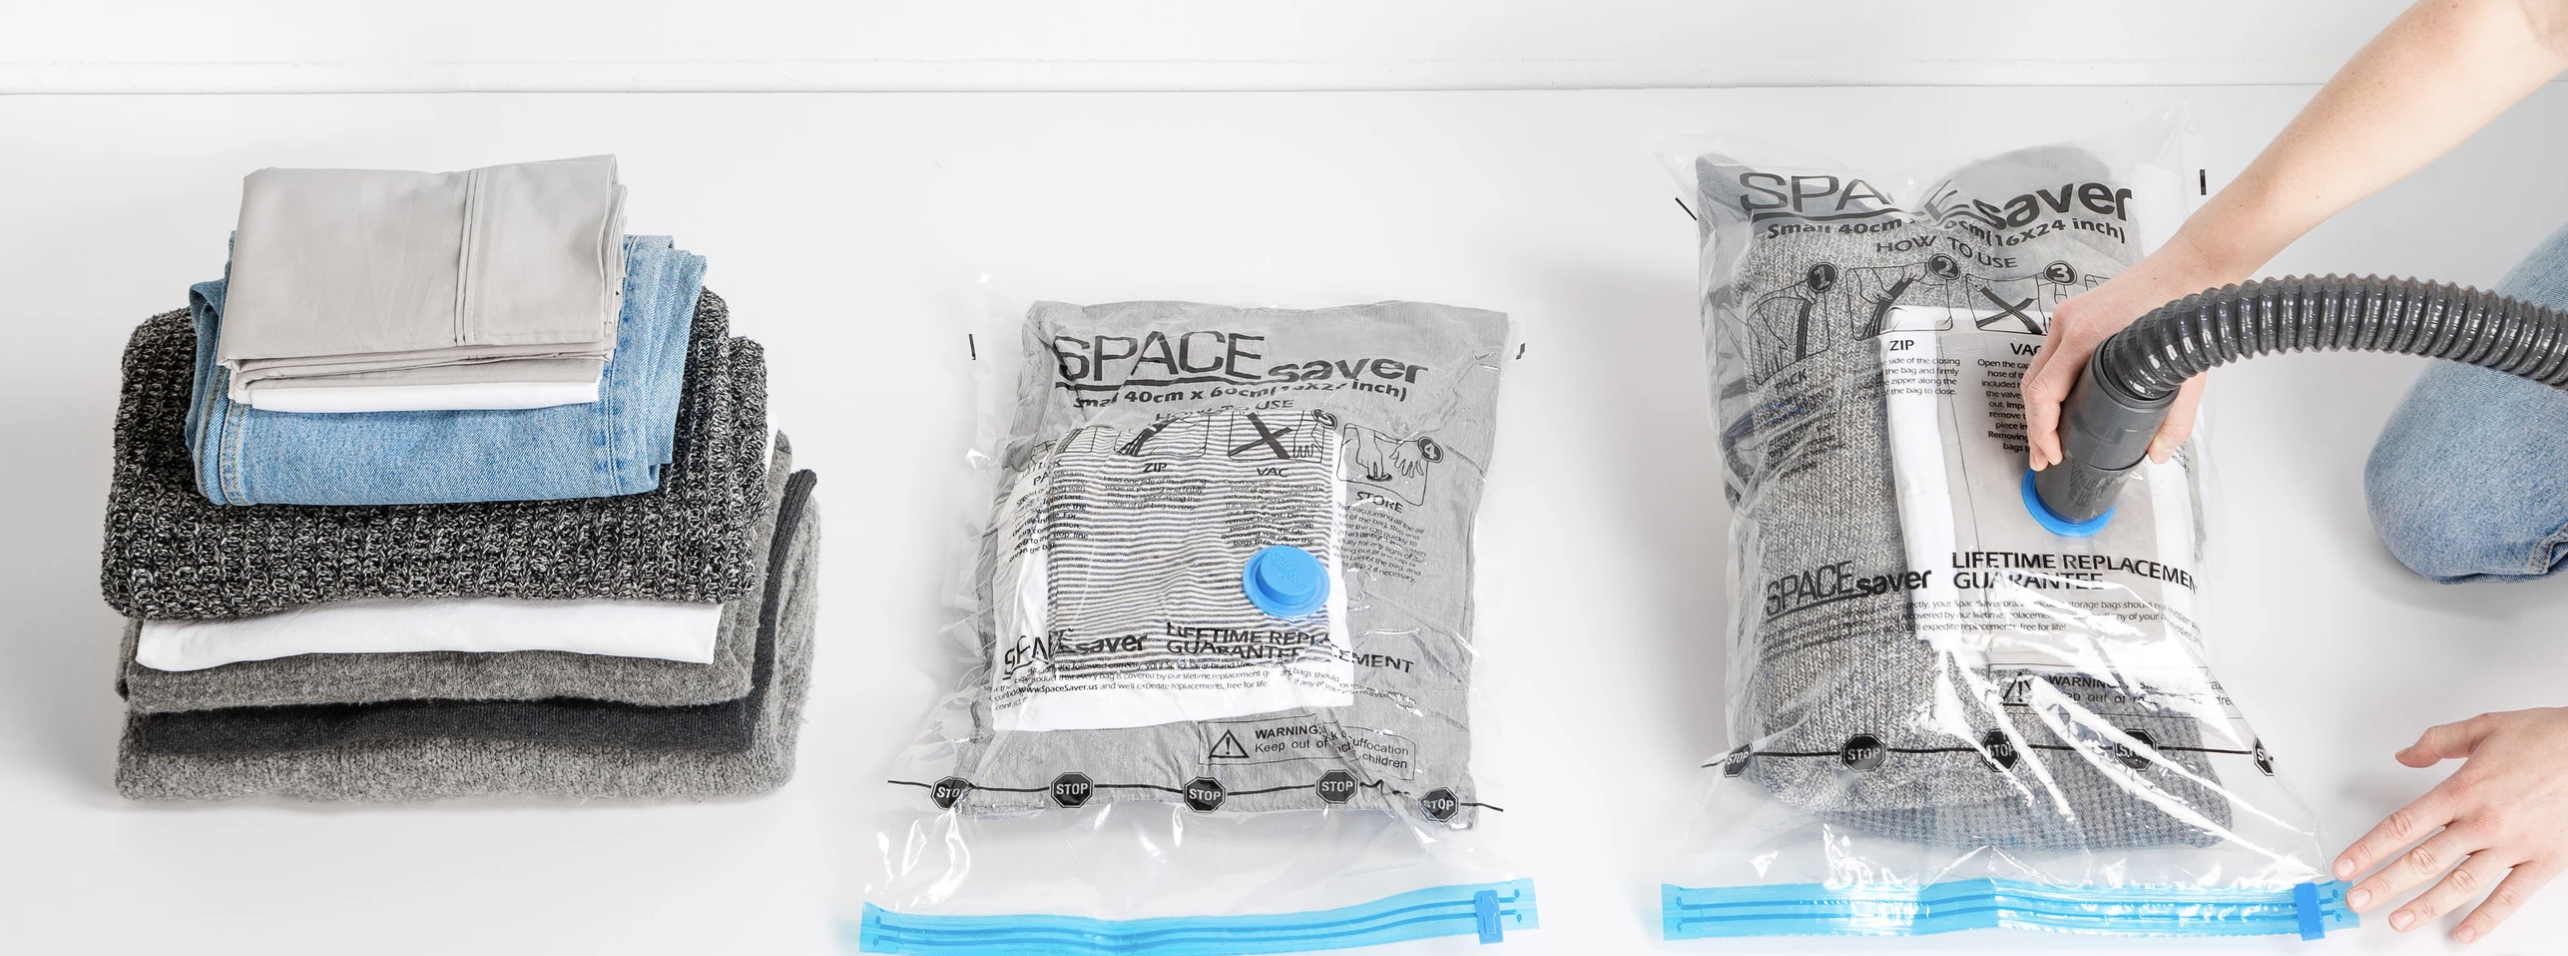 A stack of linens next to two of the bags, including one with a vacuum hose attached